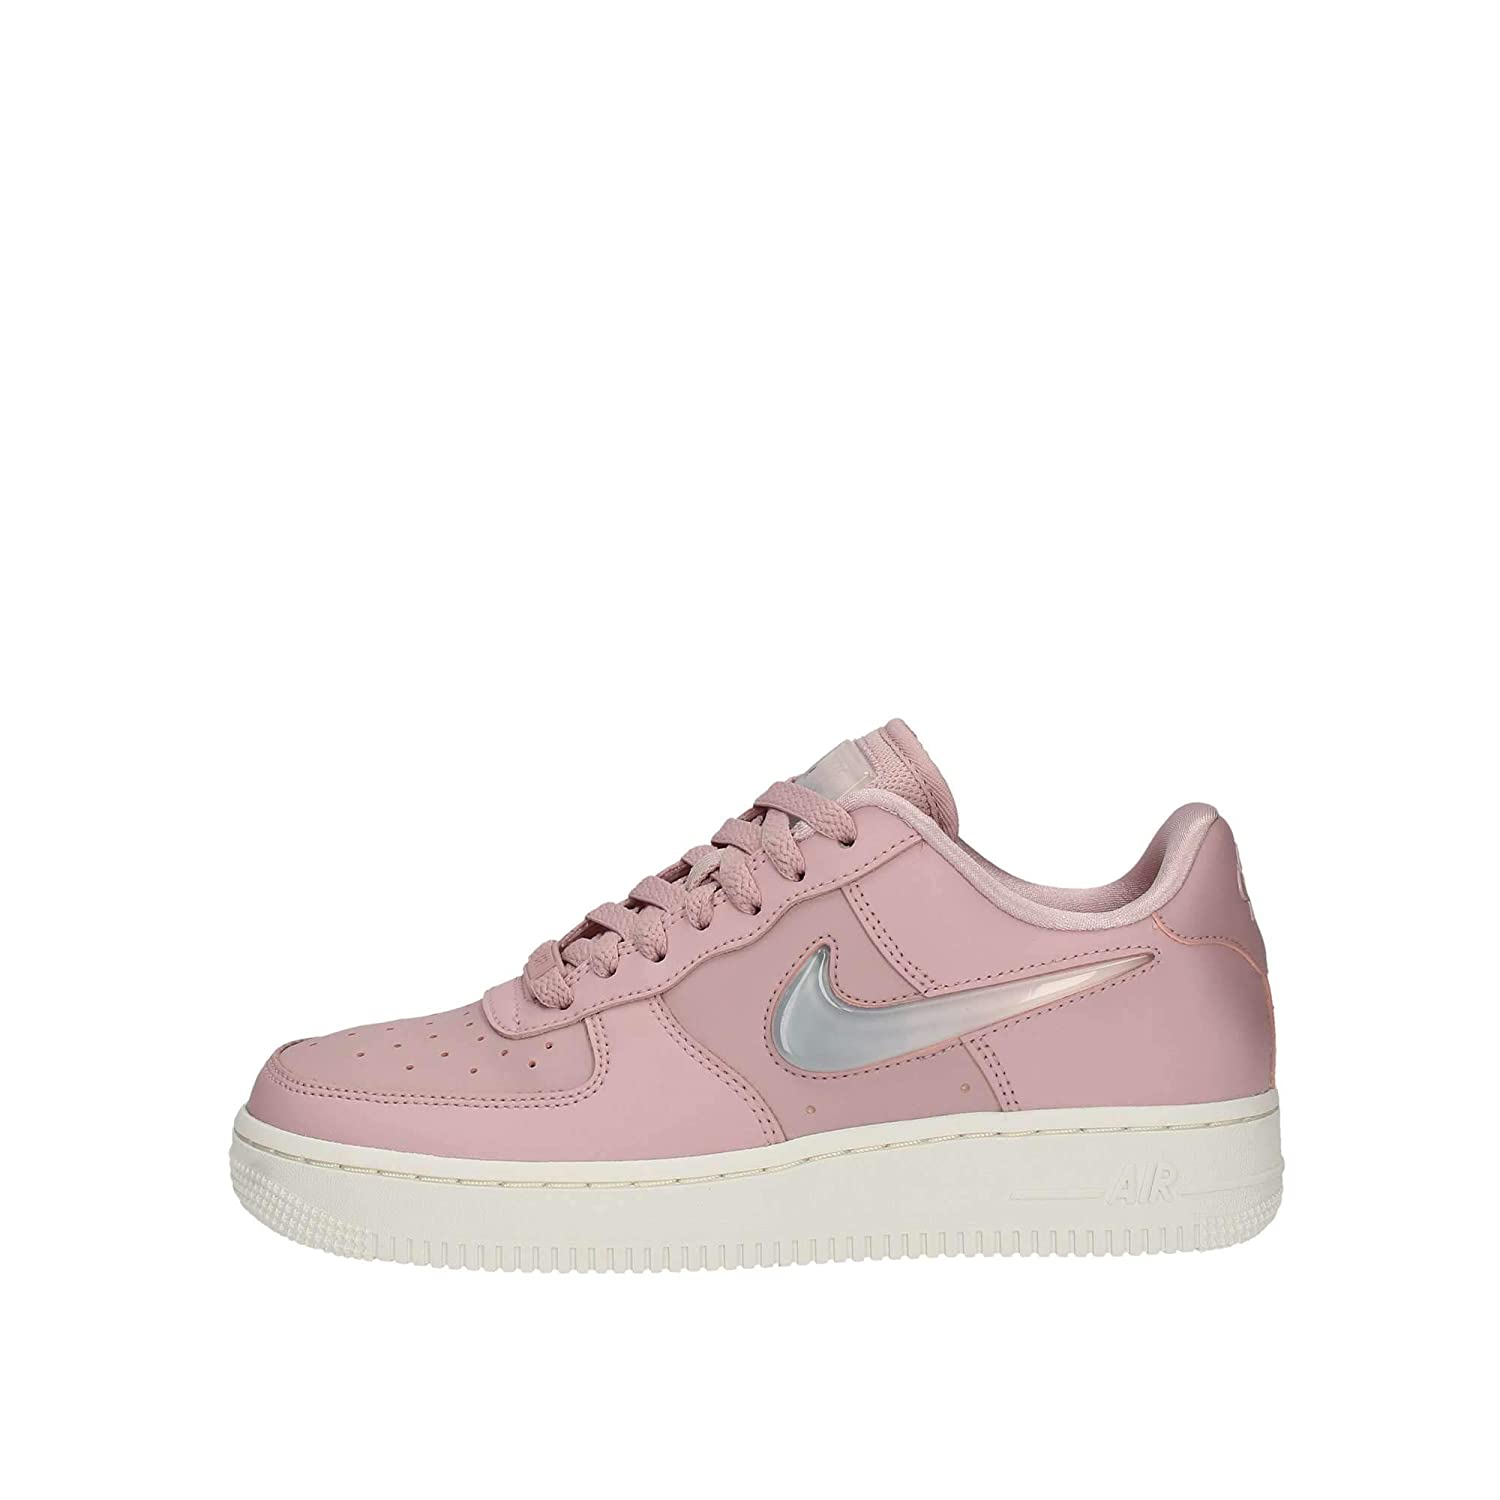 Nike W Air Force 1 '07 SE PRM [AH6827-500] Women Casual Shoes Plum Chalk/US 6.5